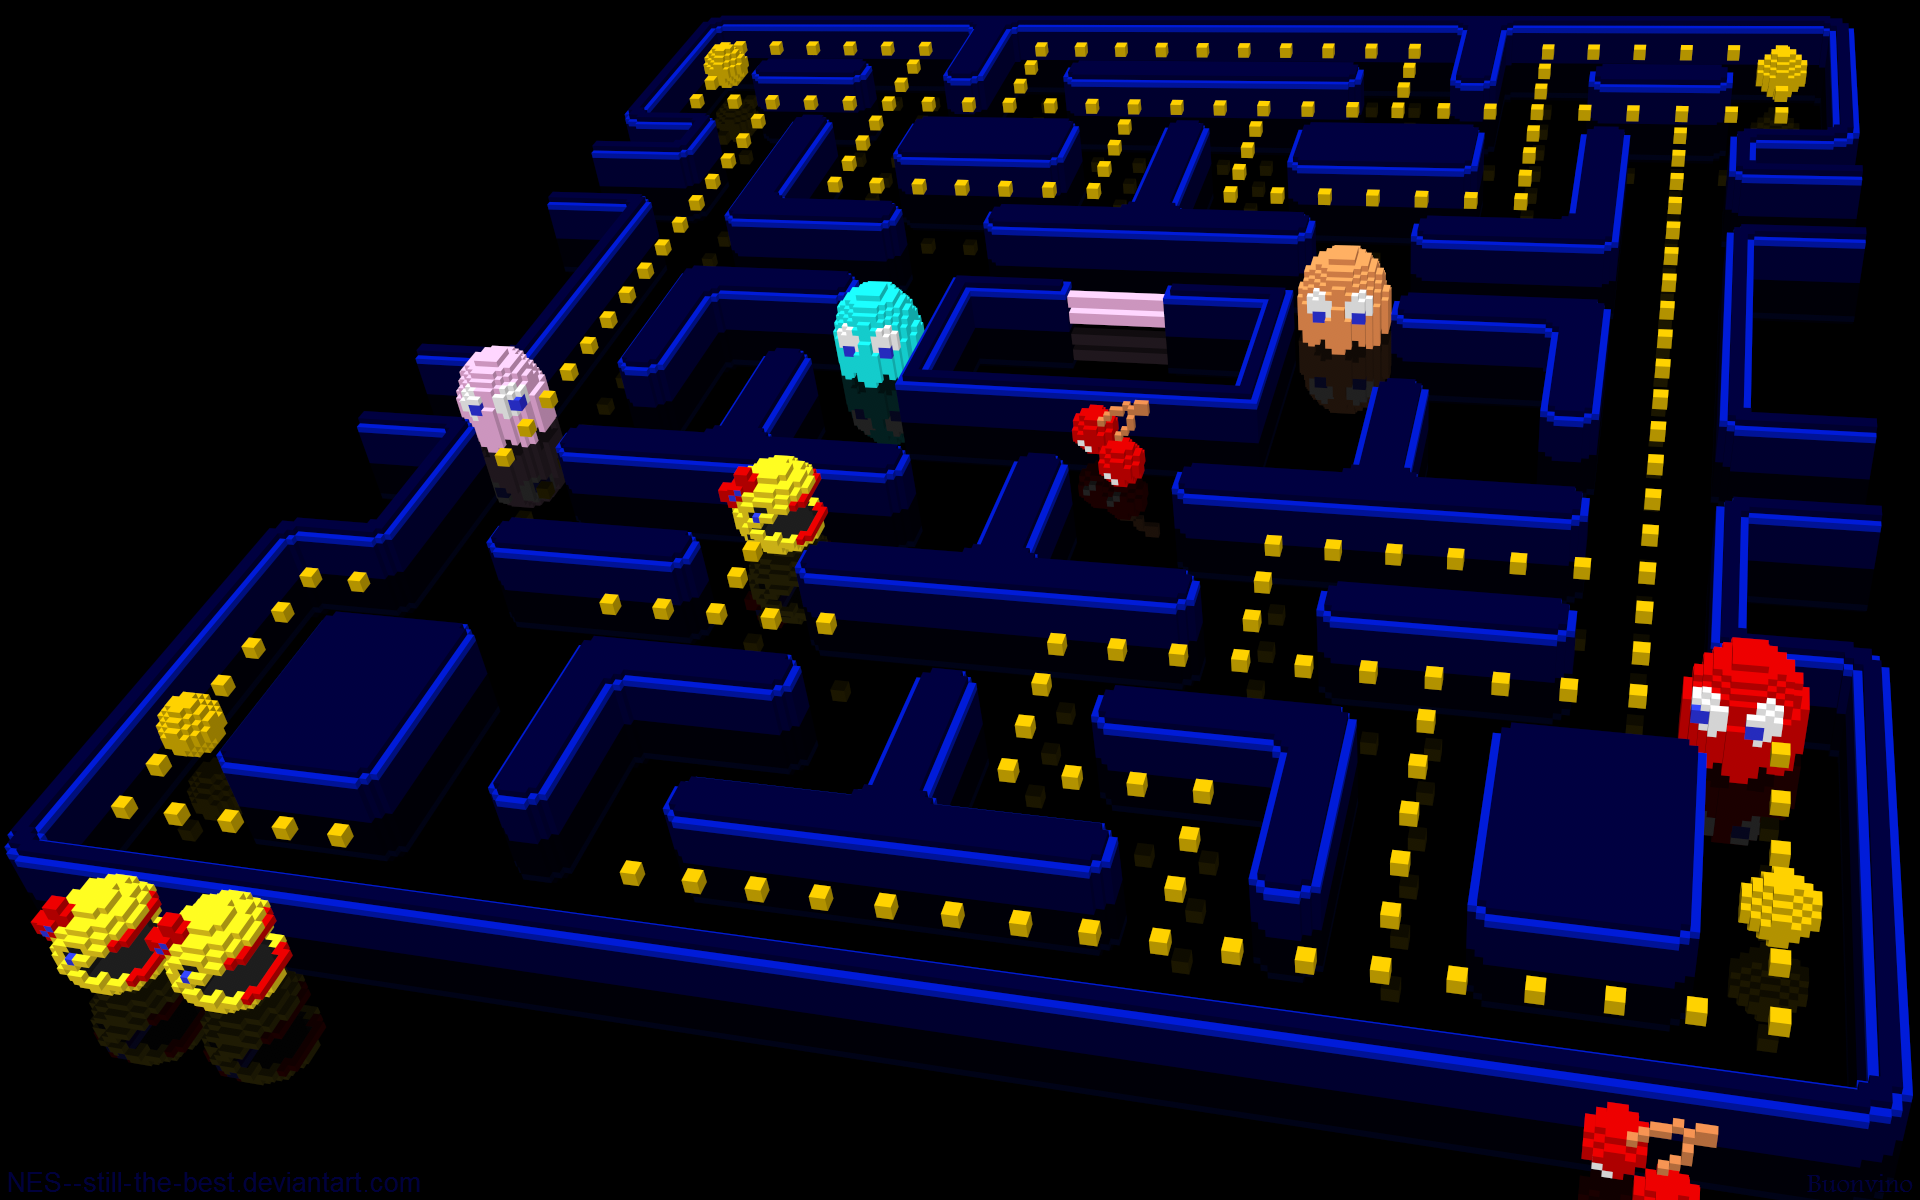 3D Ms Pac Man by NES  still the best 1920x1200